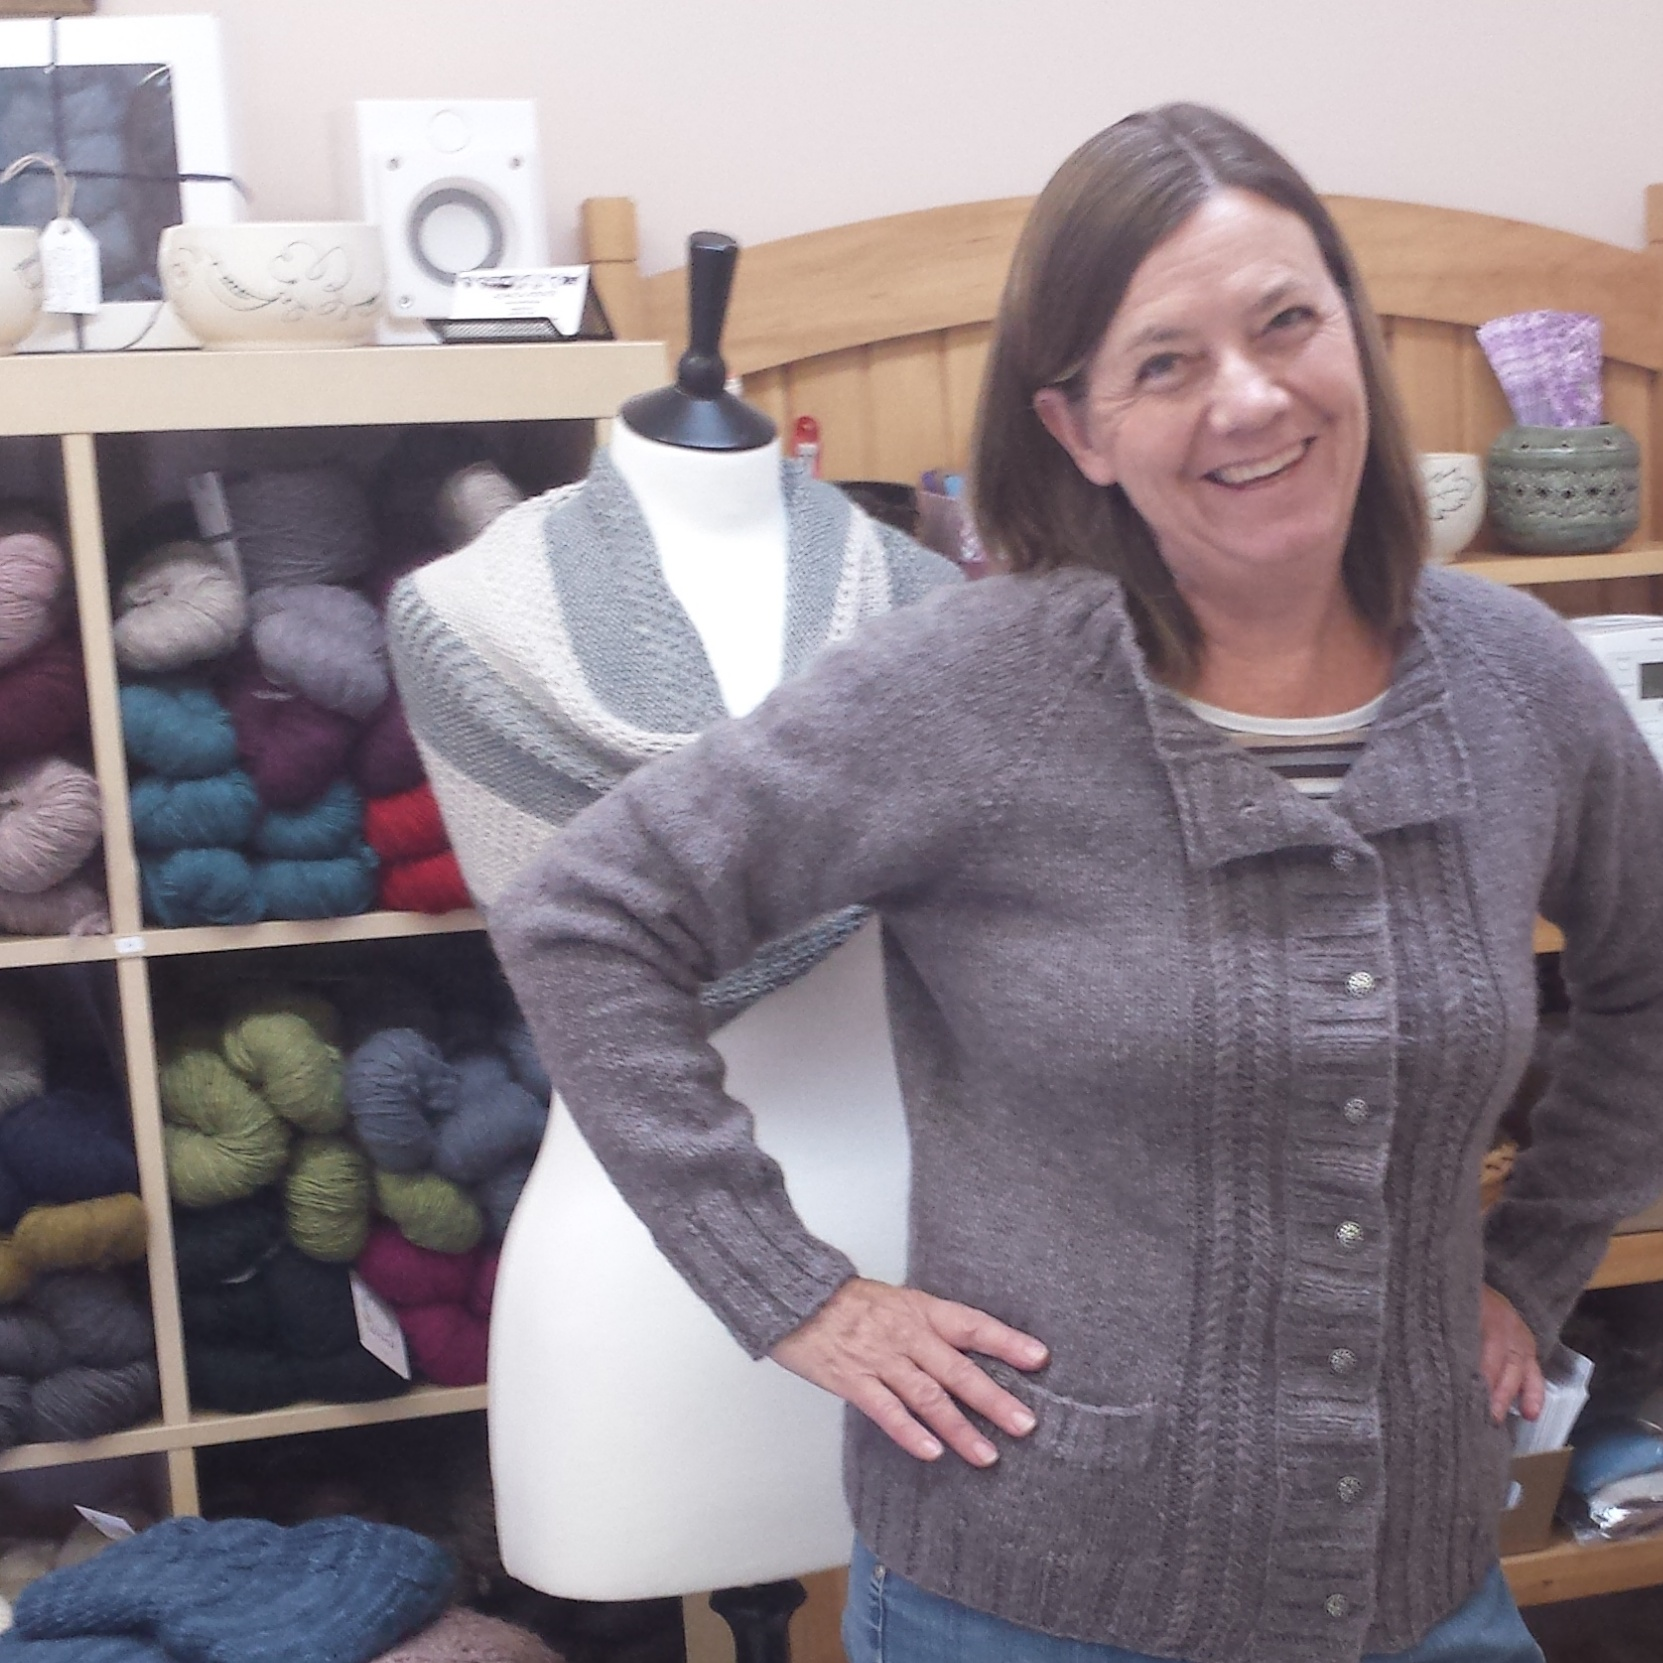 This was the Houghton Cardigan by Marie Greene which I knit in O-Wool Local, a yarn that I am continually impressed with and thoroughly enjoy working with. It comes in 20+ gorgeous colours.